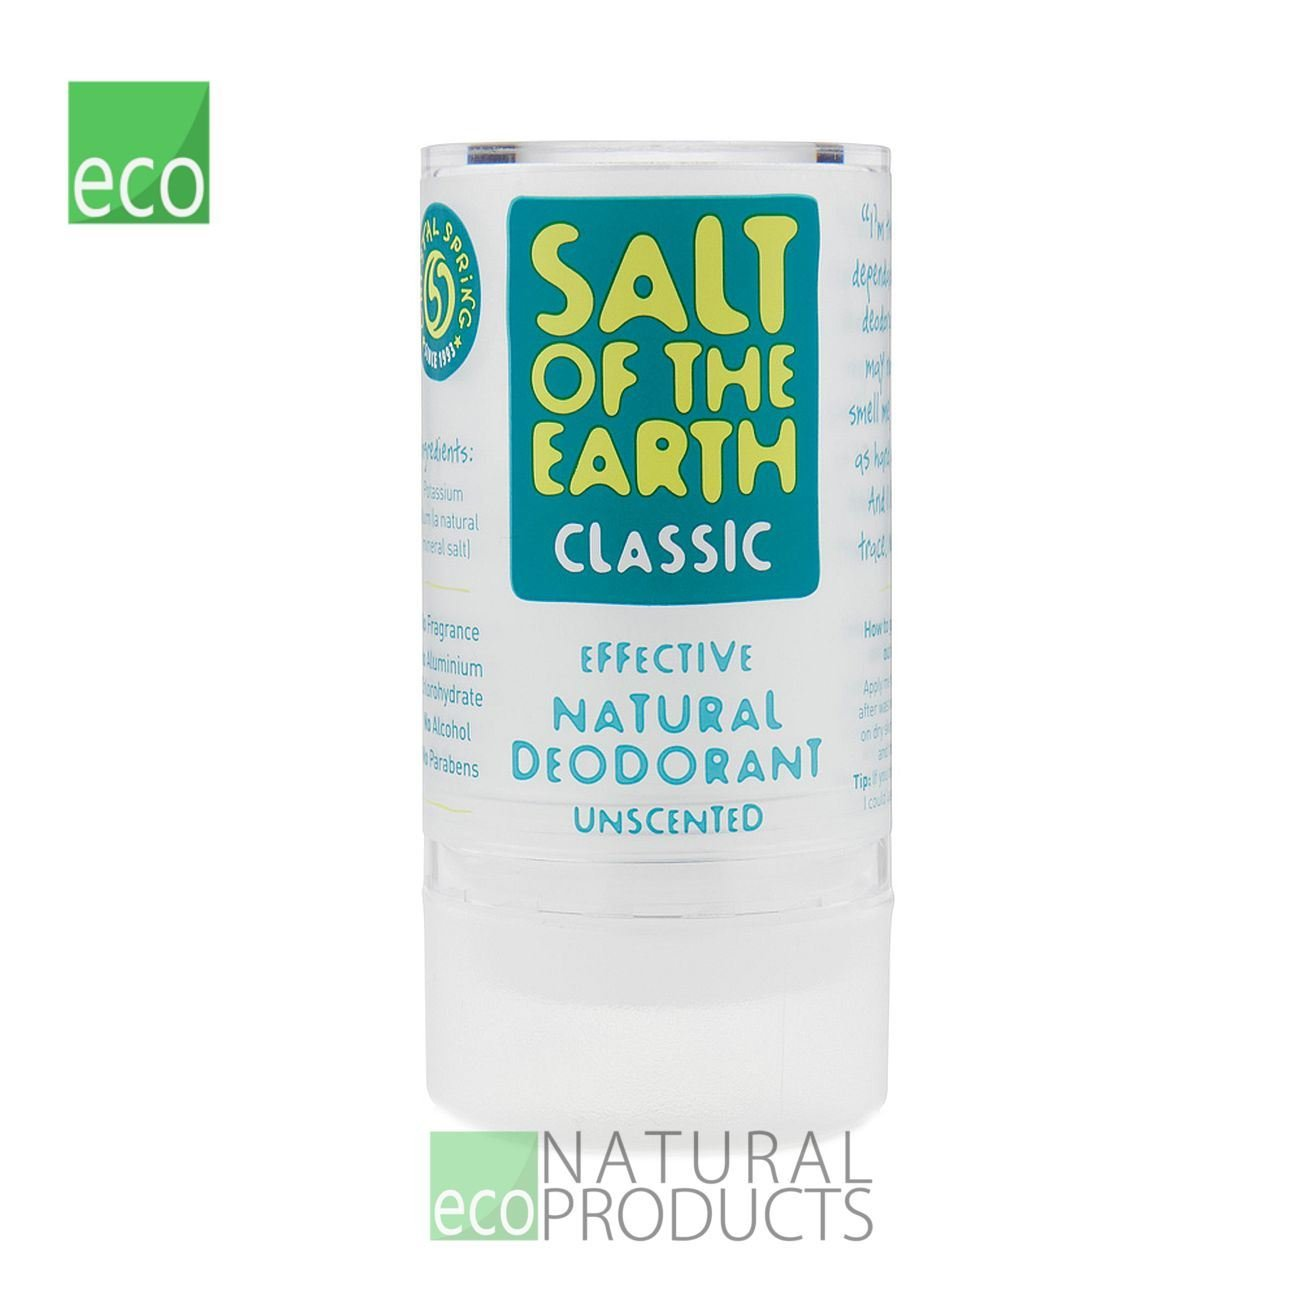 Salt of the Earth Natural Deodorant 90g BHBAZUSF0518A4096